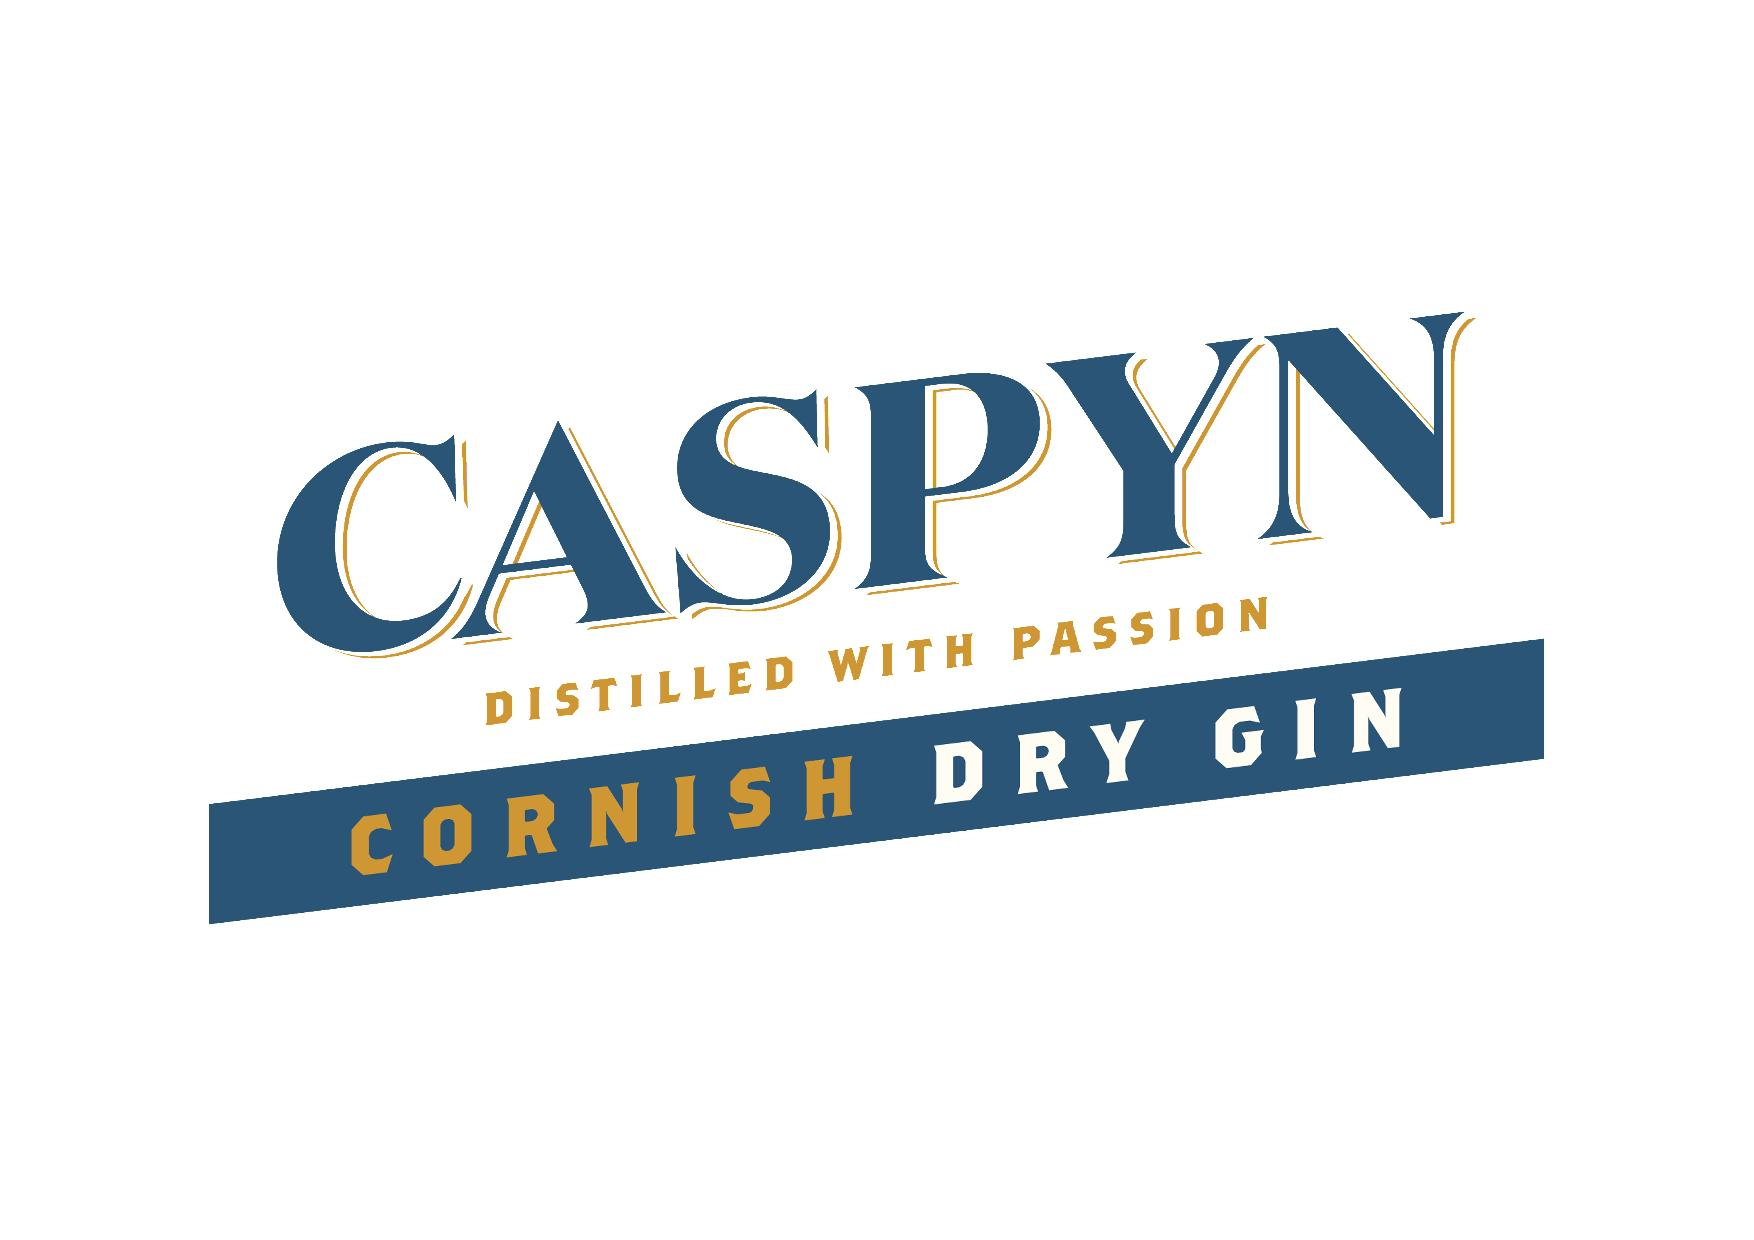 Caspyn distilled with passion cornish dry gin